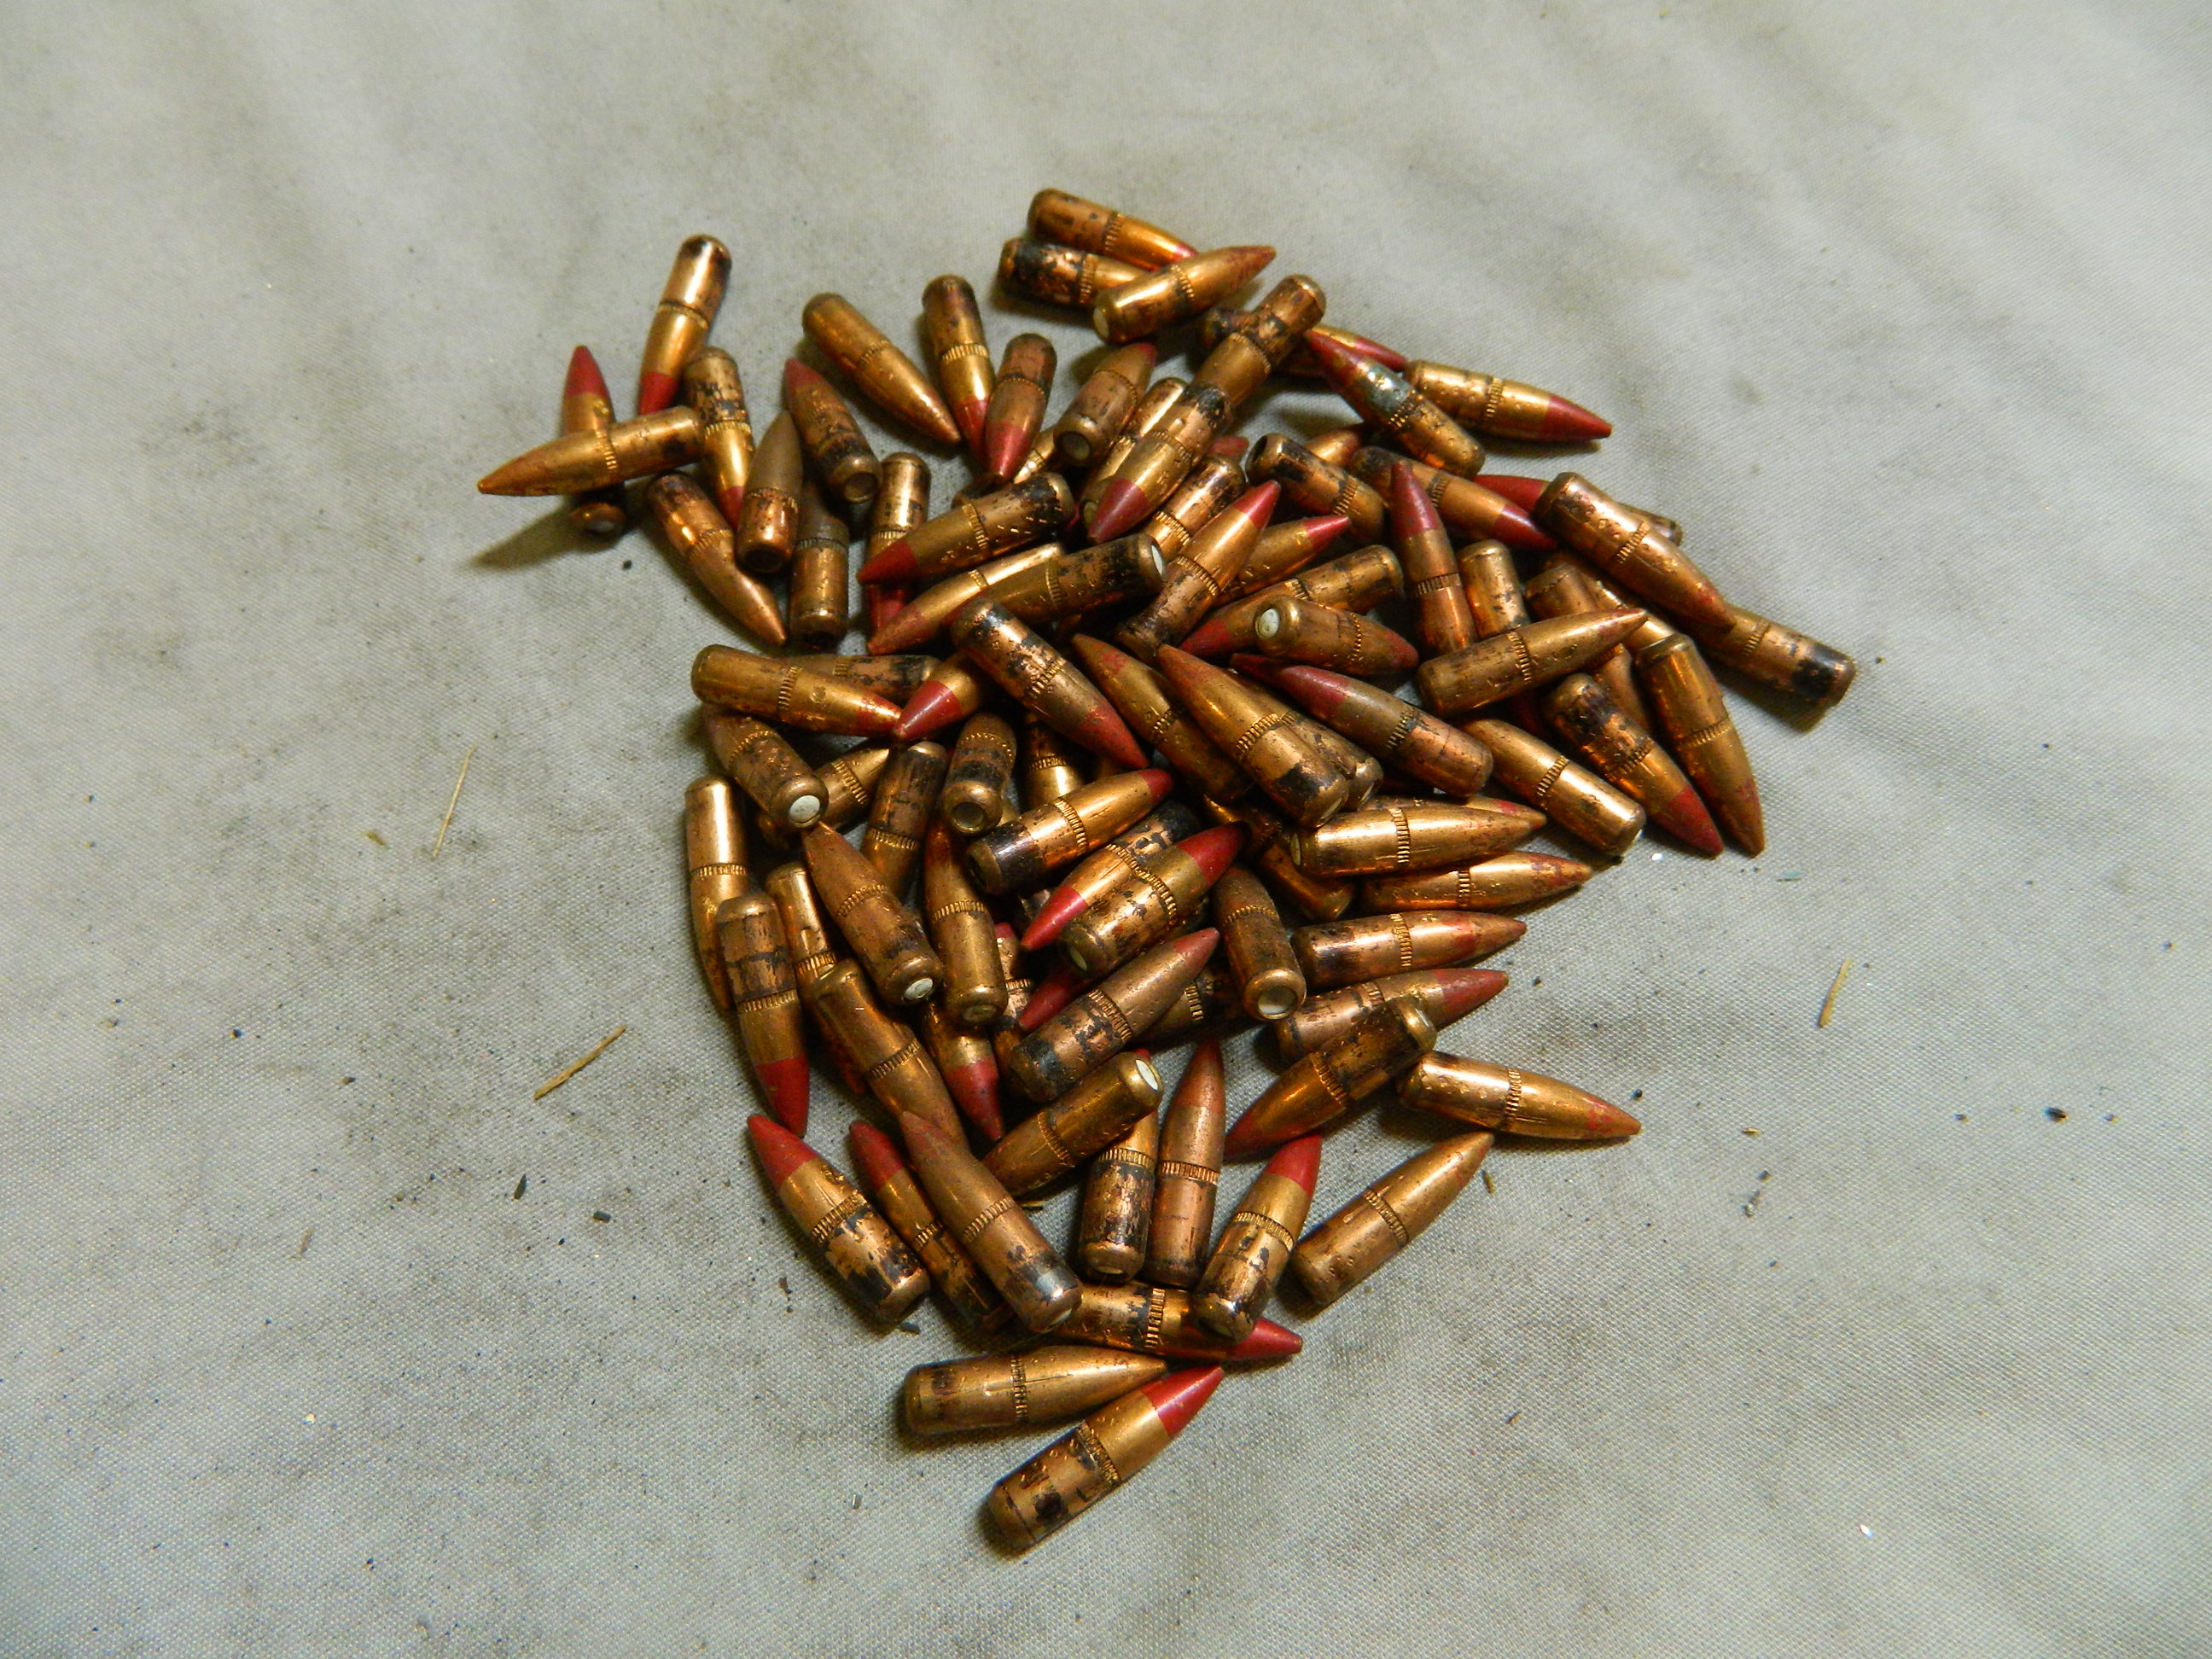 223 Cal.- 55gr Tracer Bullets- 100 Ct. Pulled- white bottom